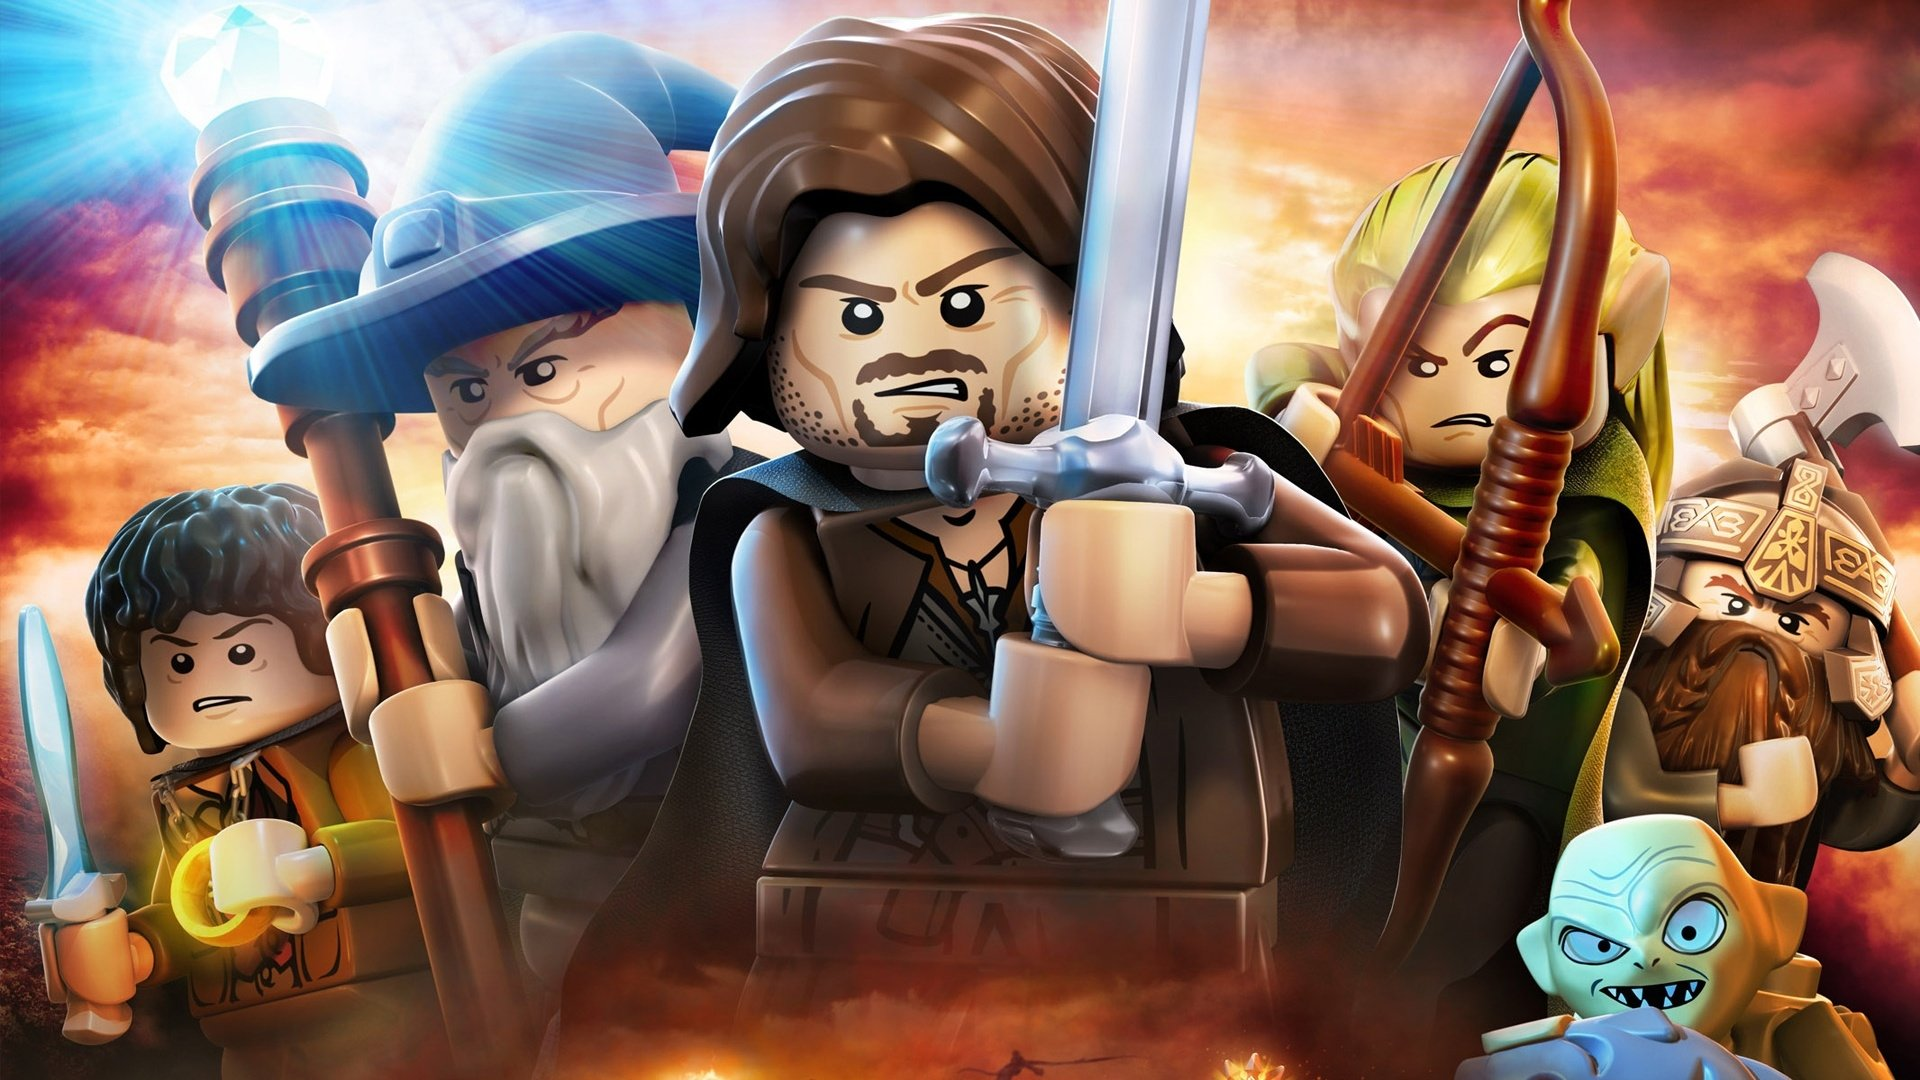 LEGO The Lord of the Rings Fondo de pantalla HD | Fondo de ...